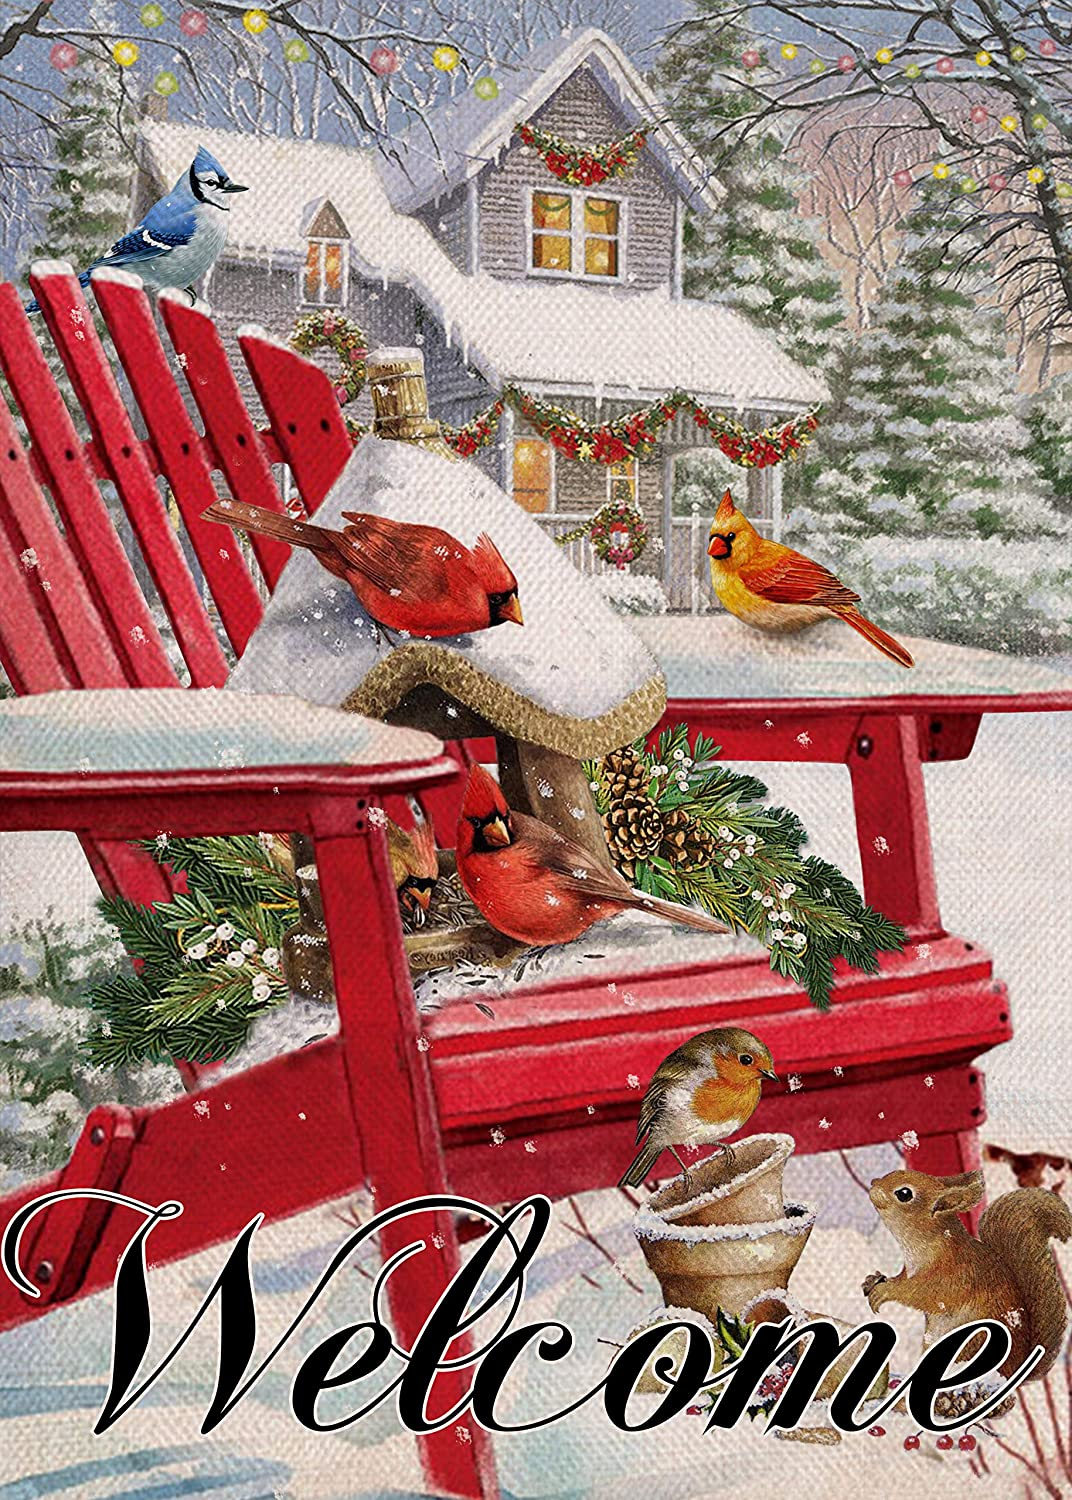 Covido Home Decorative Winter Welcome Garden Flag, Christmas Holiday House Yard Cardinal Bird Squirrel Snowy Decor, Xmas Outside Red Chair Decorations Seasonal Outdoor Small Flag Double Sided 12 x 18